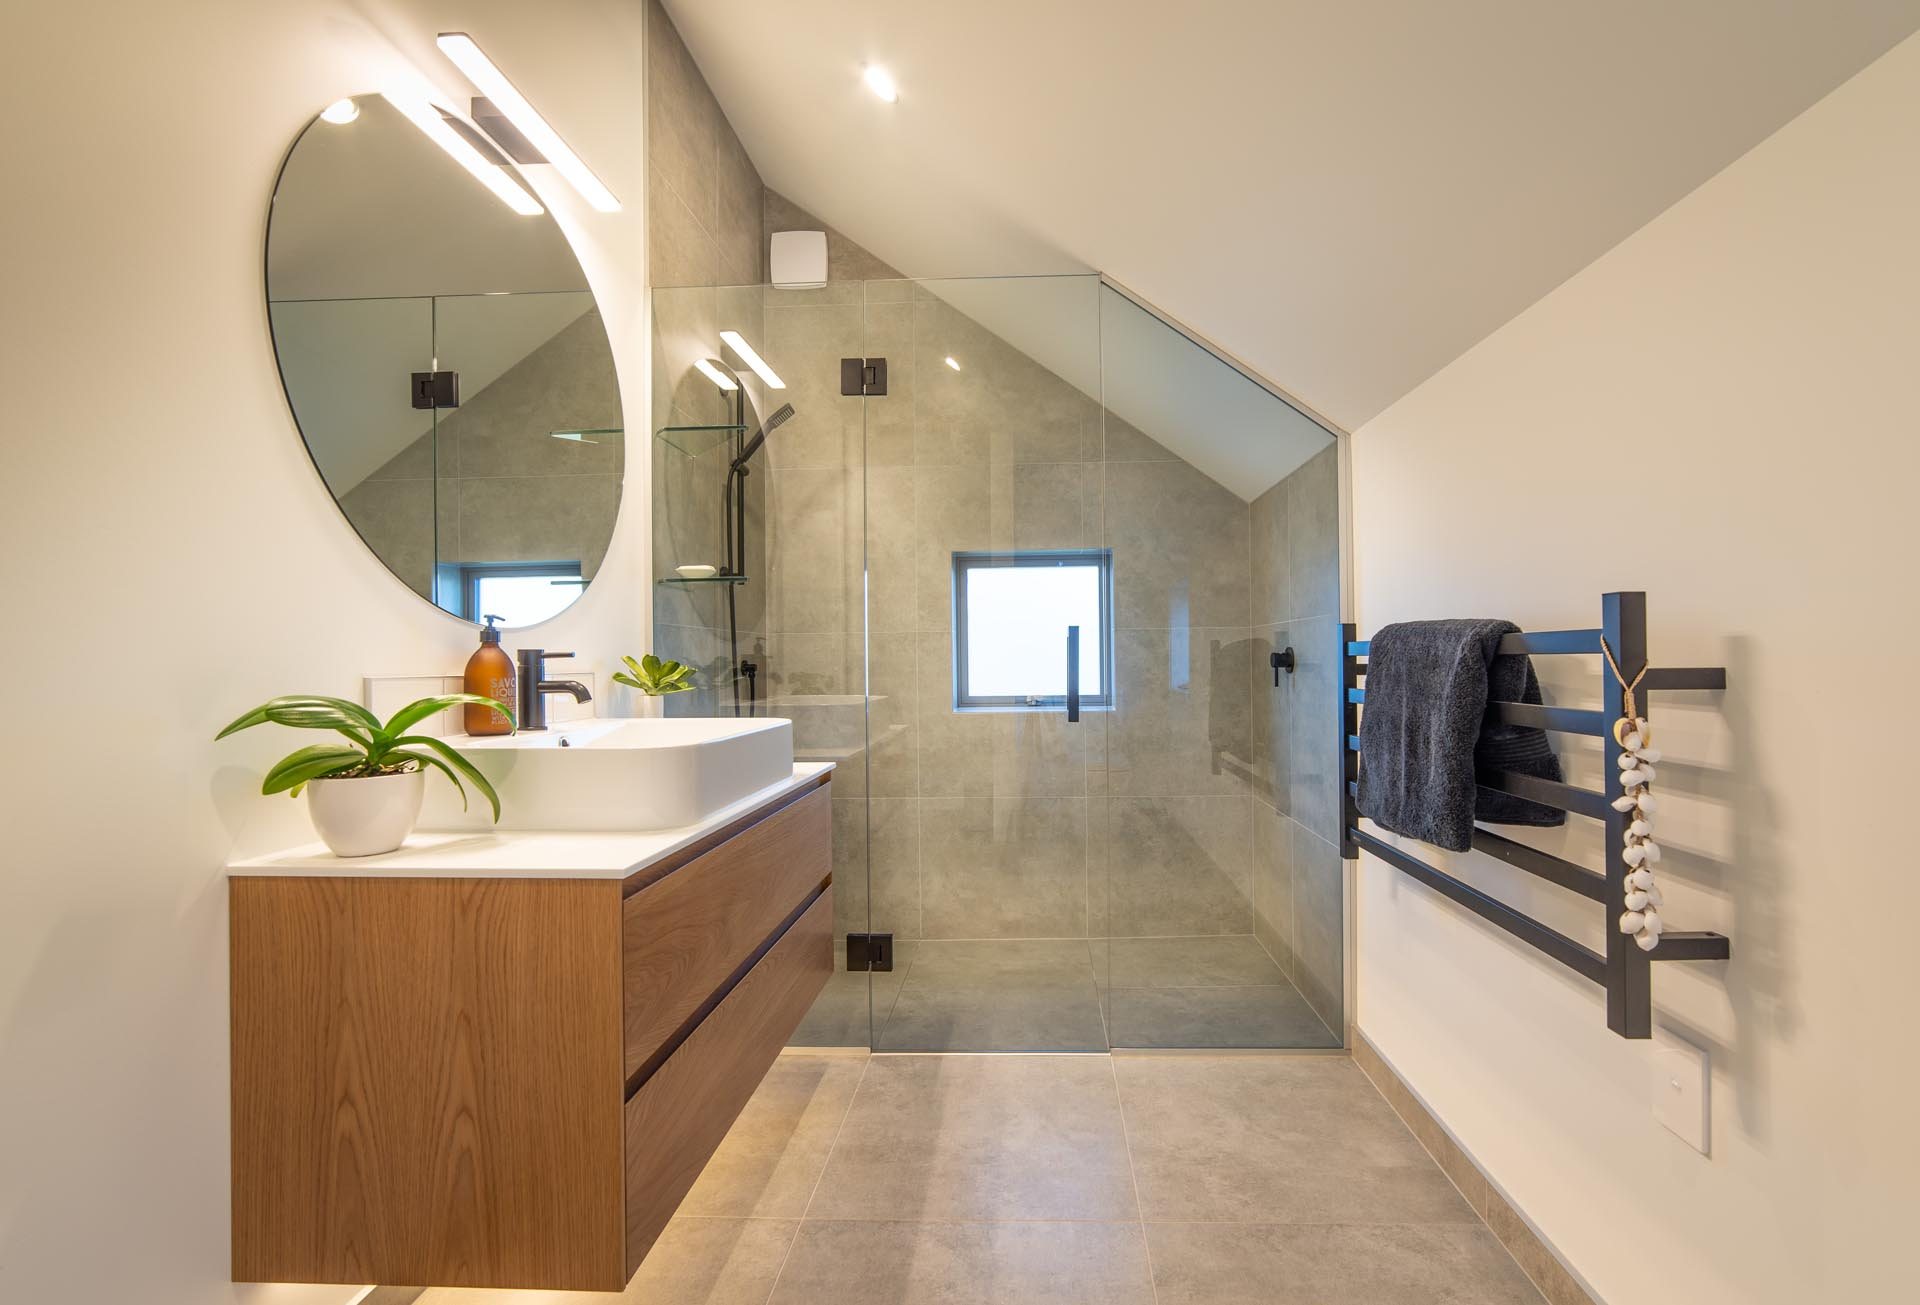 In this modern bathroom, the shower tile follows the line of the angled ceiling, while the wood vanity has hidden lighting underneath.